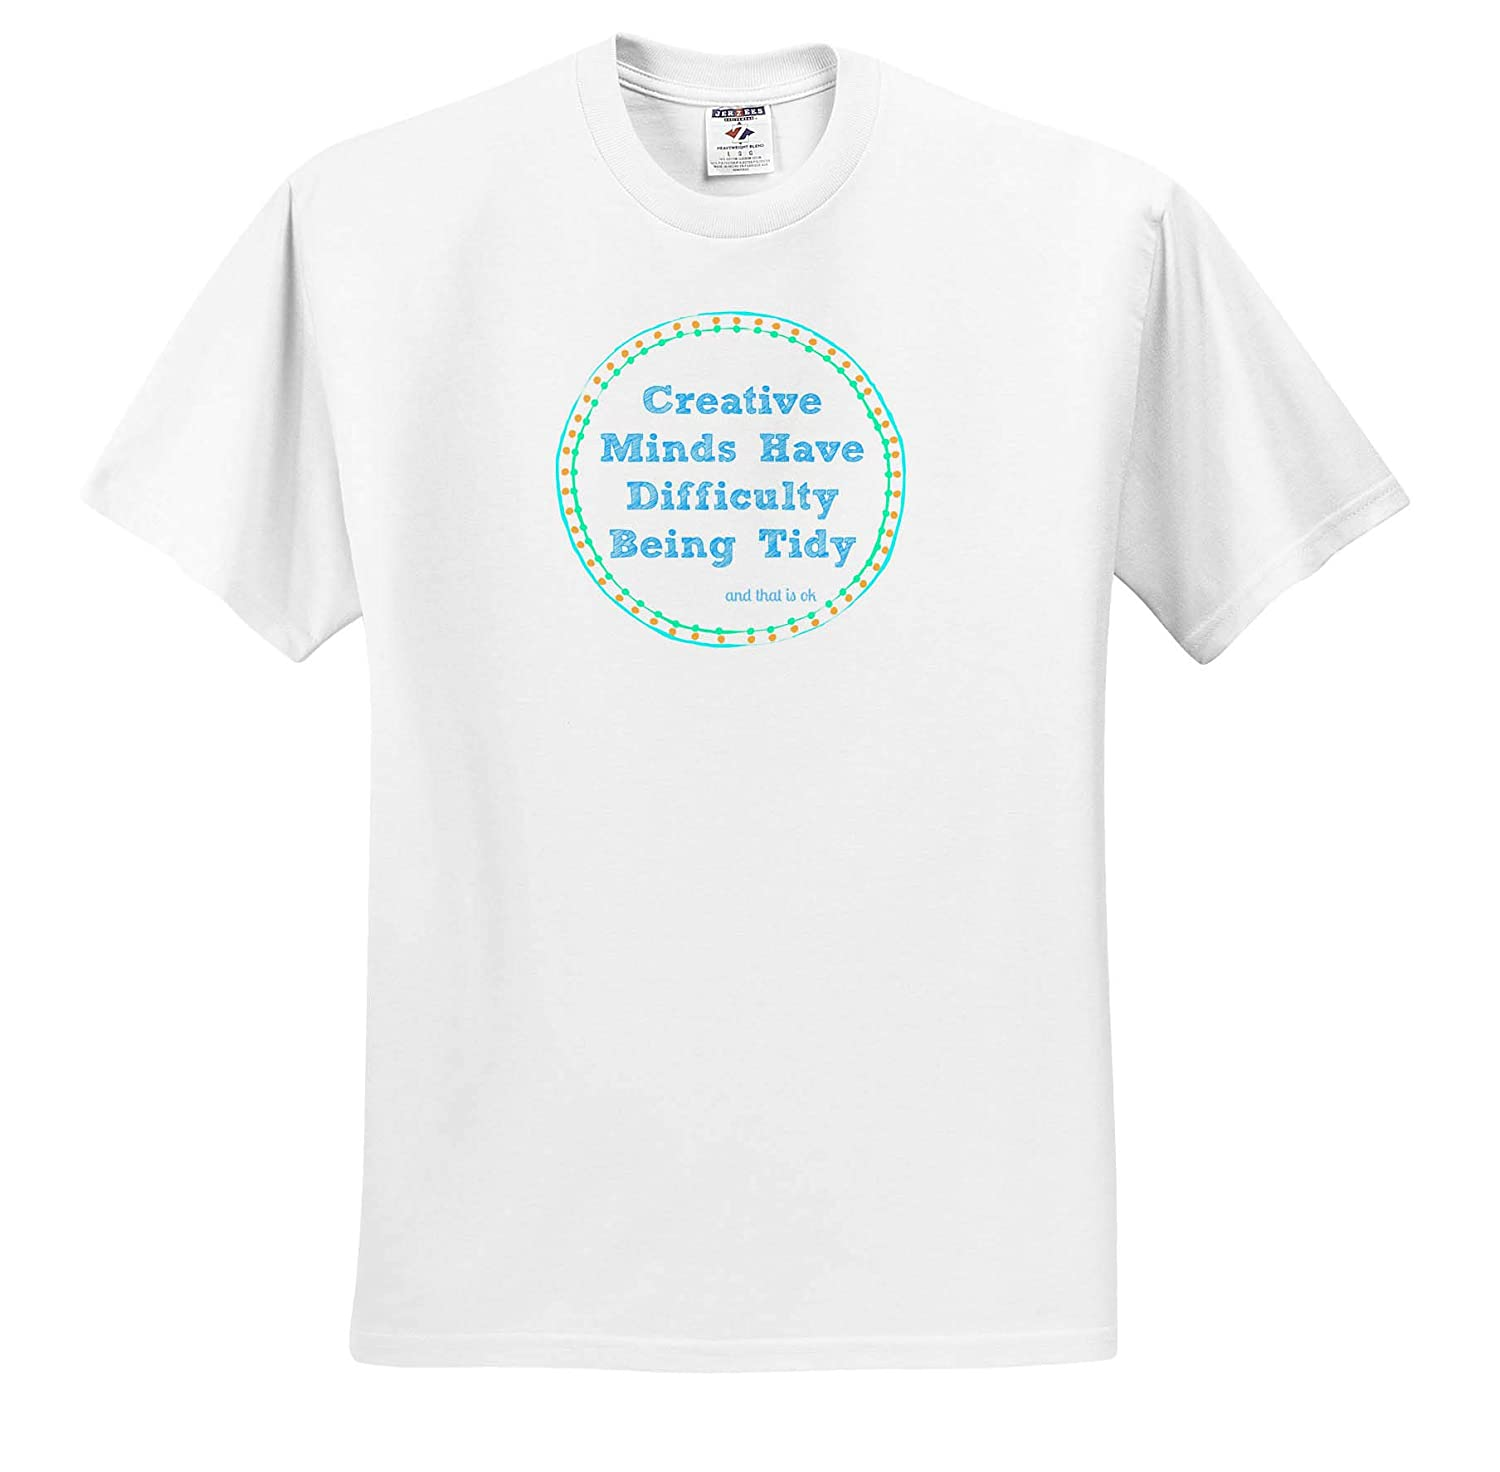 3dRose Carrie Merchant Quote ts/_314179 Image of Creative Minds Have Difficulty Being Tidy Adult T-Shirt XL